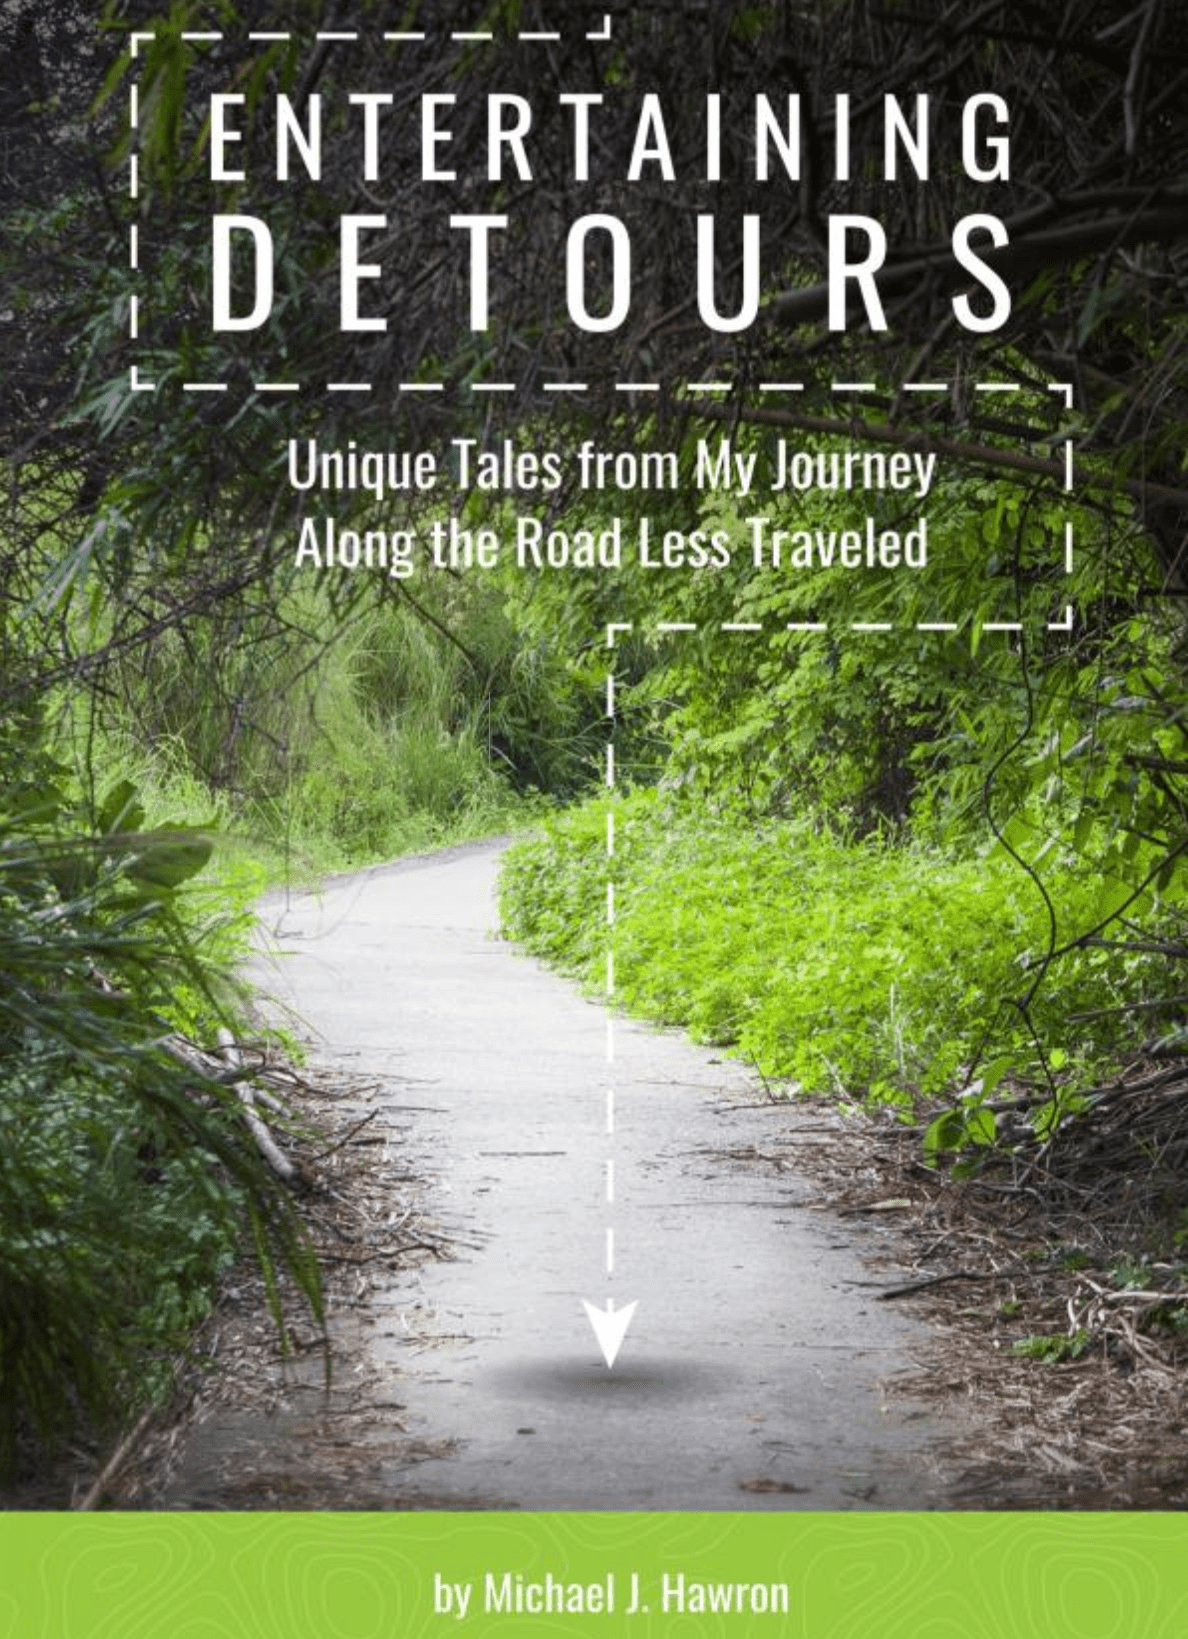 Entertaining Detours